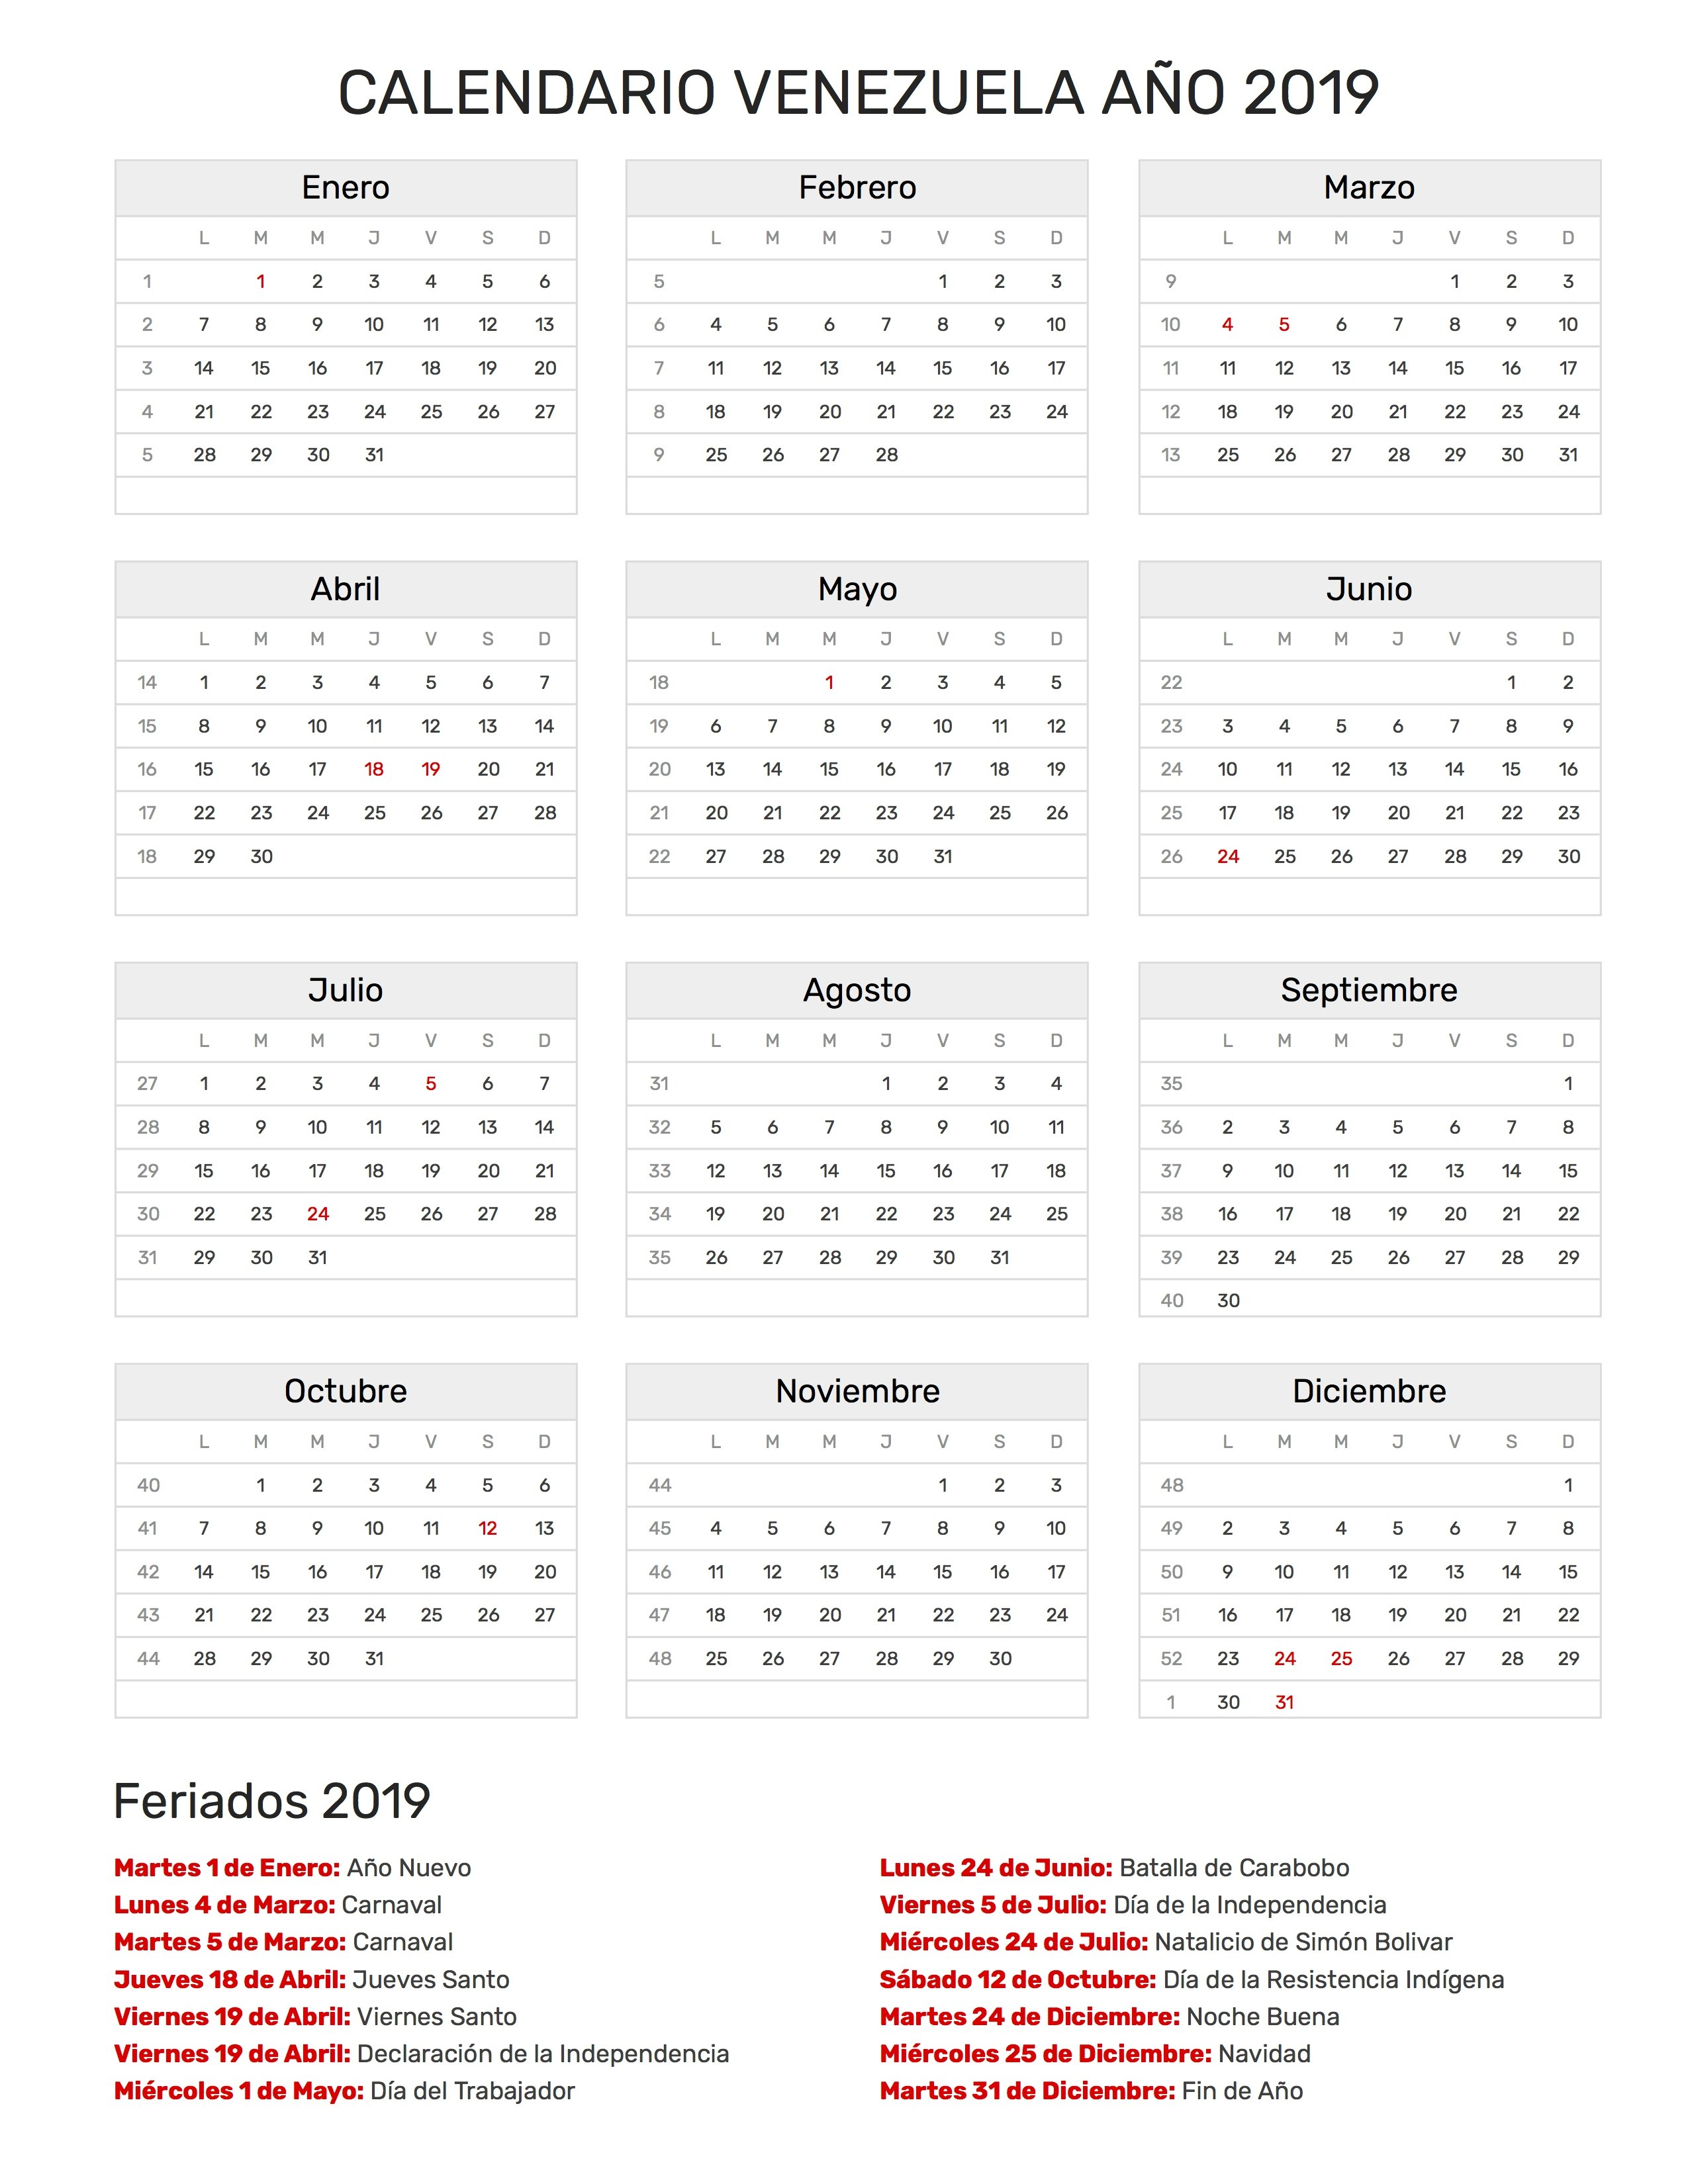 Calendario 2017 Chile Para Imprimir Pdf Actual Holiday Calendar Colombia Calendario De Dias Festivos Fiestas Y Of Calendario 2017 Chile Para Imprimir Pdf Más Recientemente Liberado Calendario Noviembre 2018 A Dibujar Pinterest